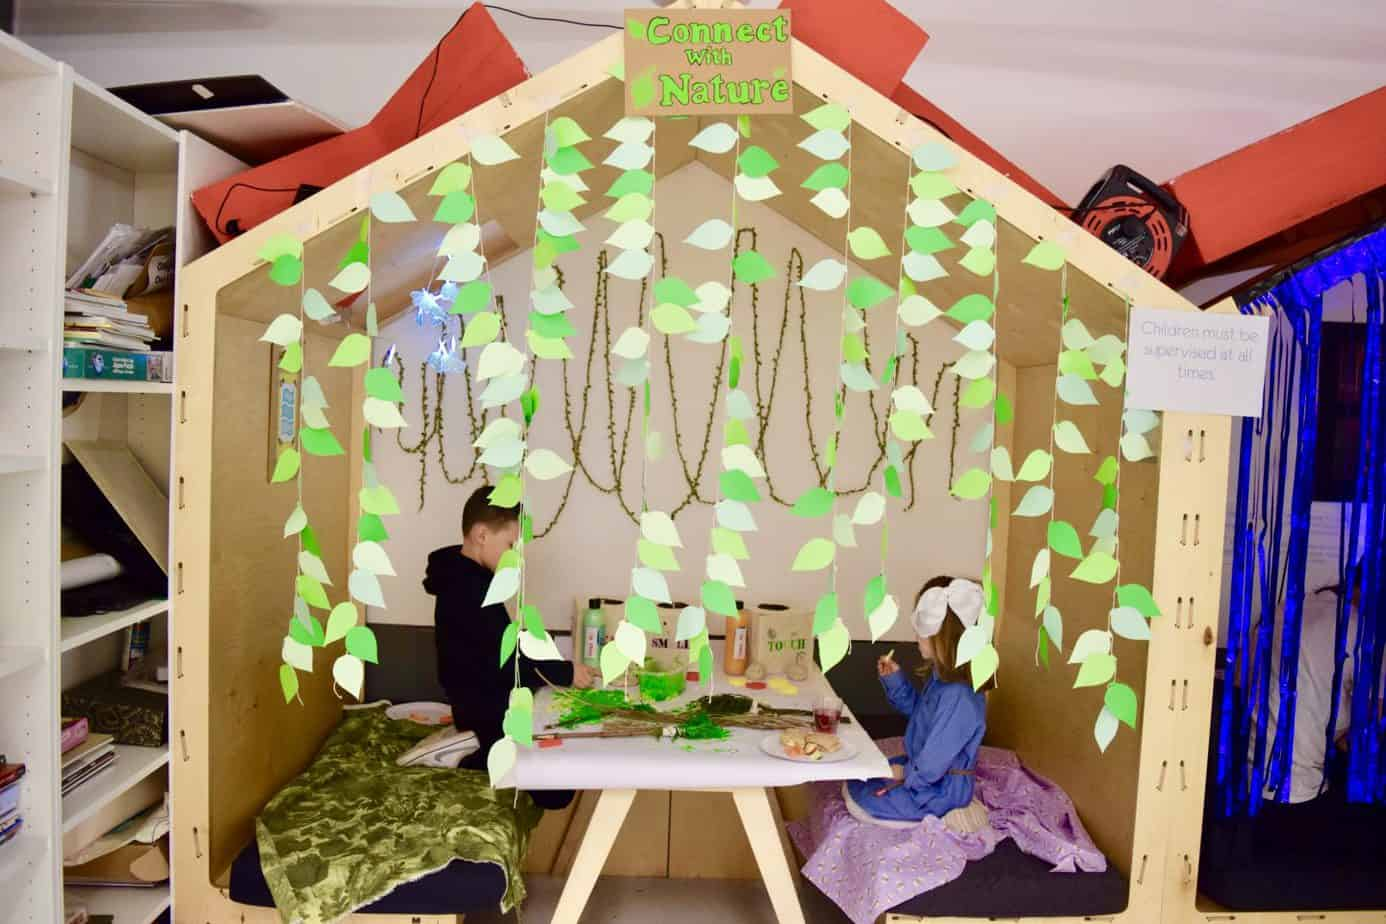 The booth where the children could play with nature and paint